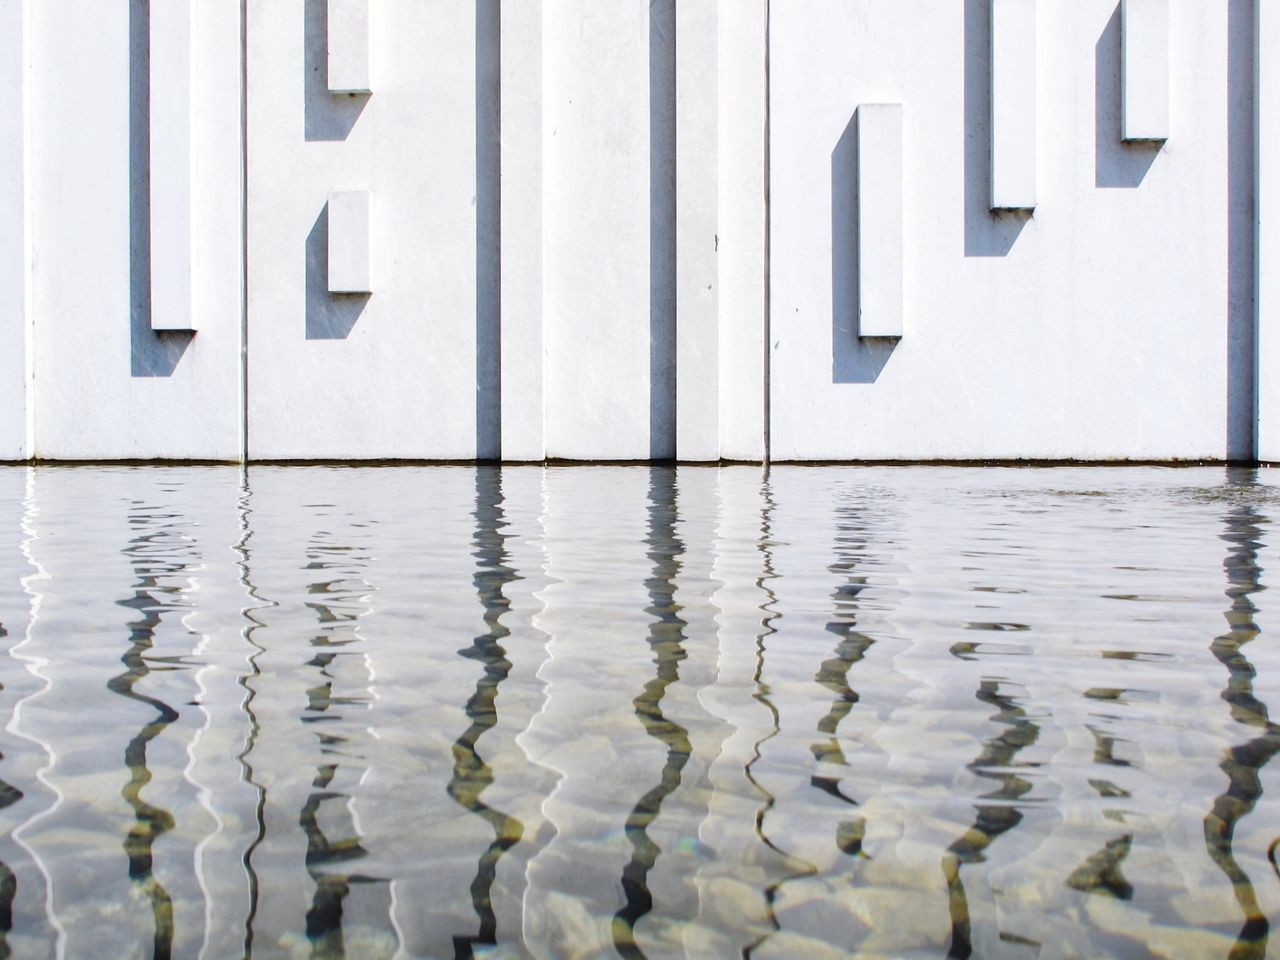 Reflection of text on water